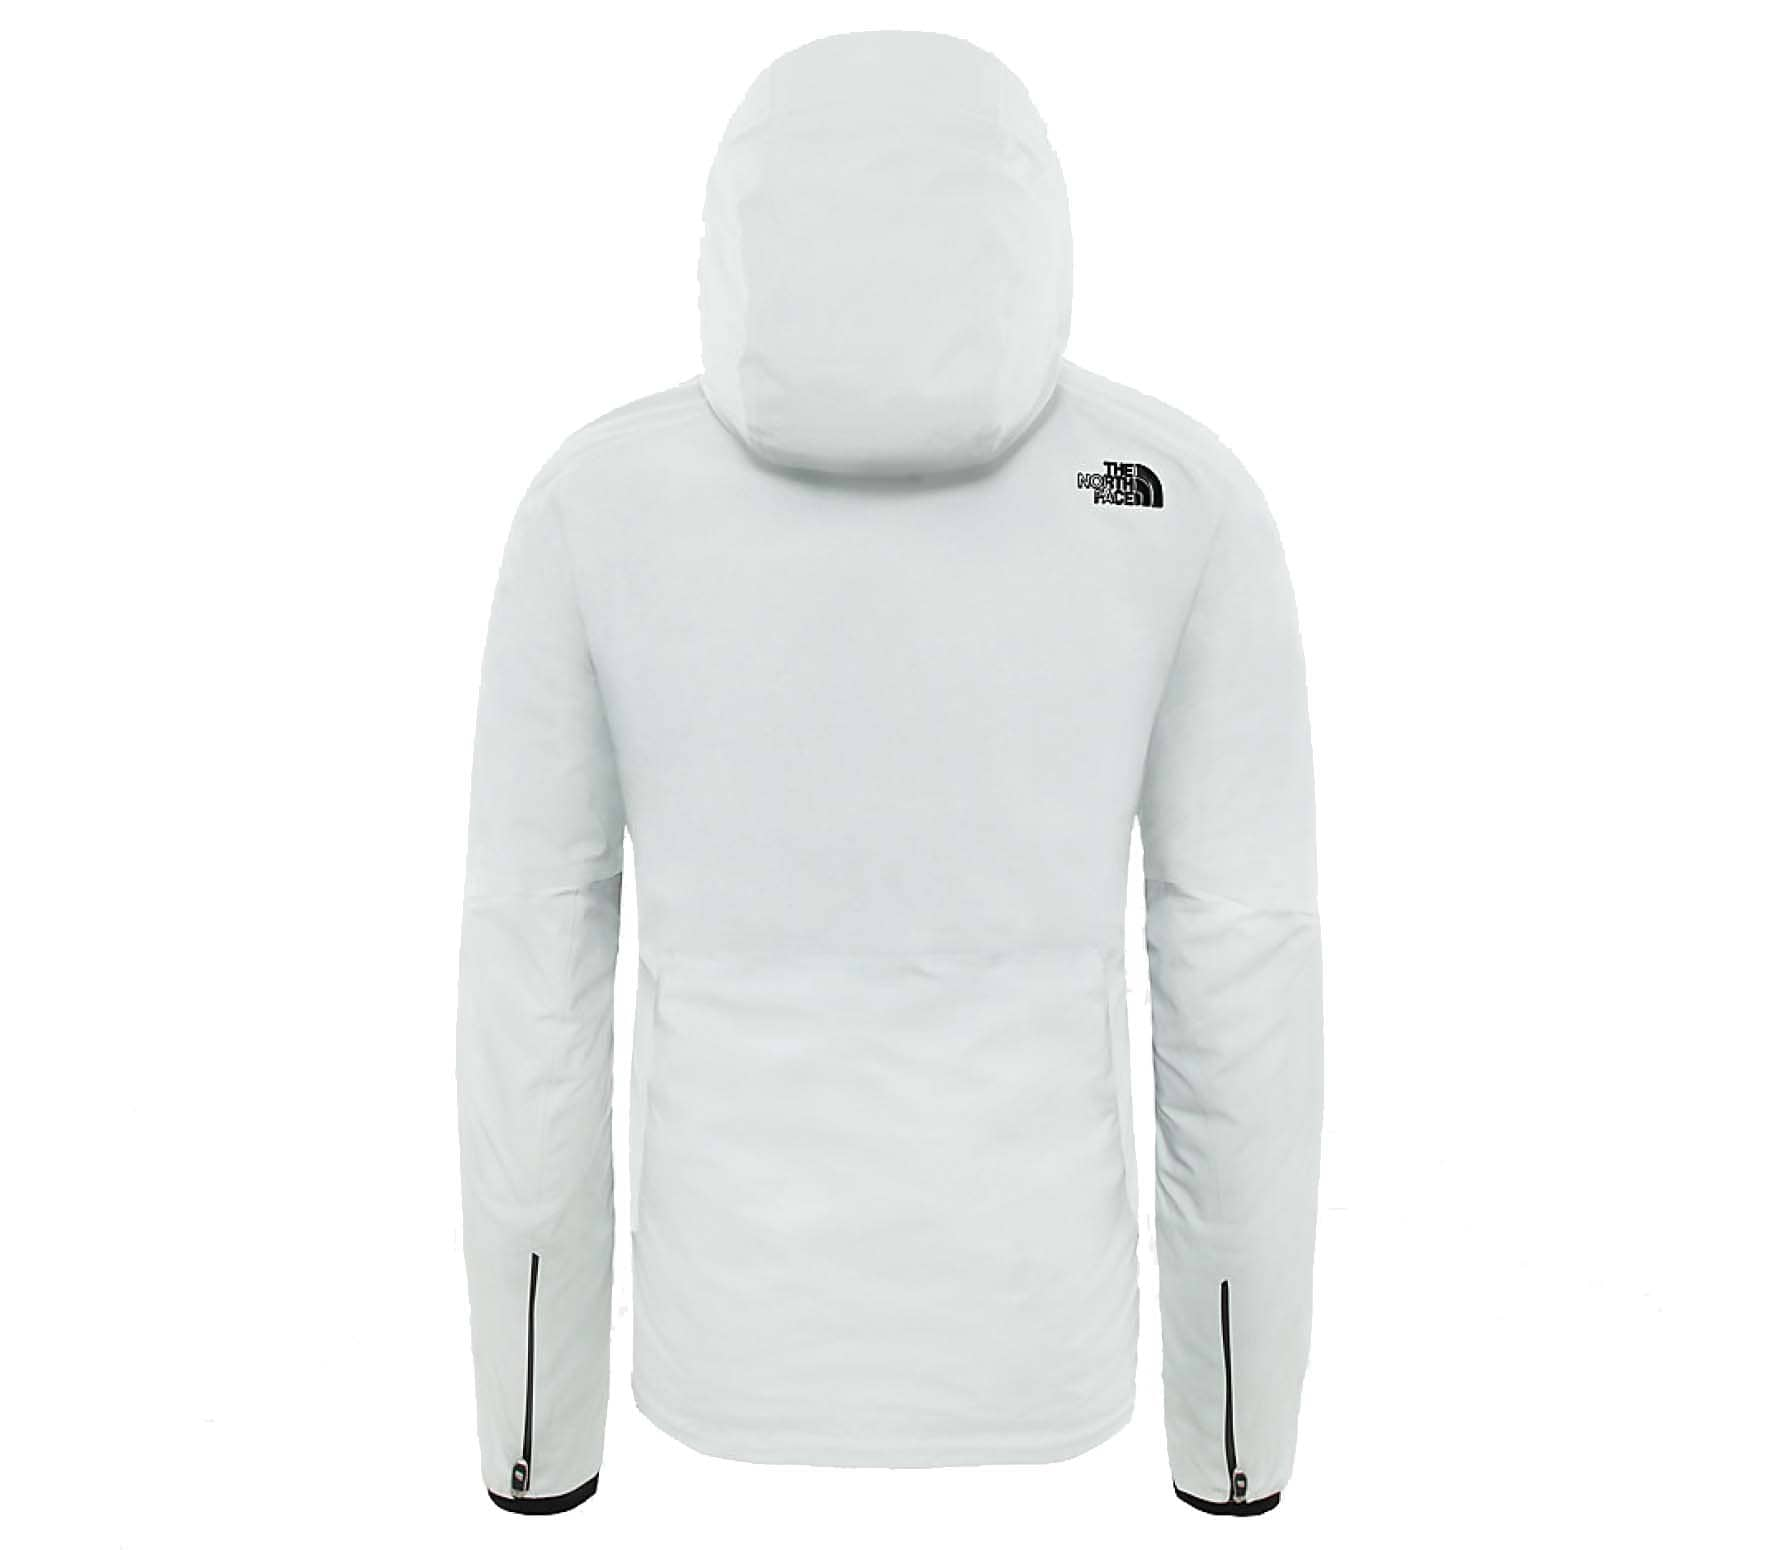 ae48fad2d5a4 The North Face - Anonym men s skis jacket (black white) - buy it at ...